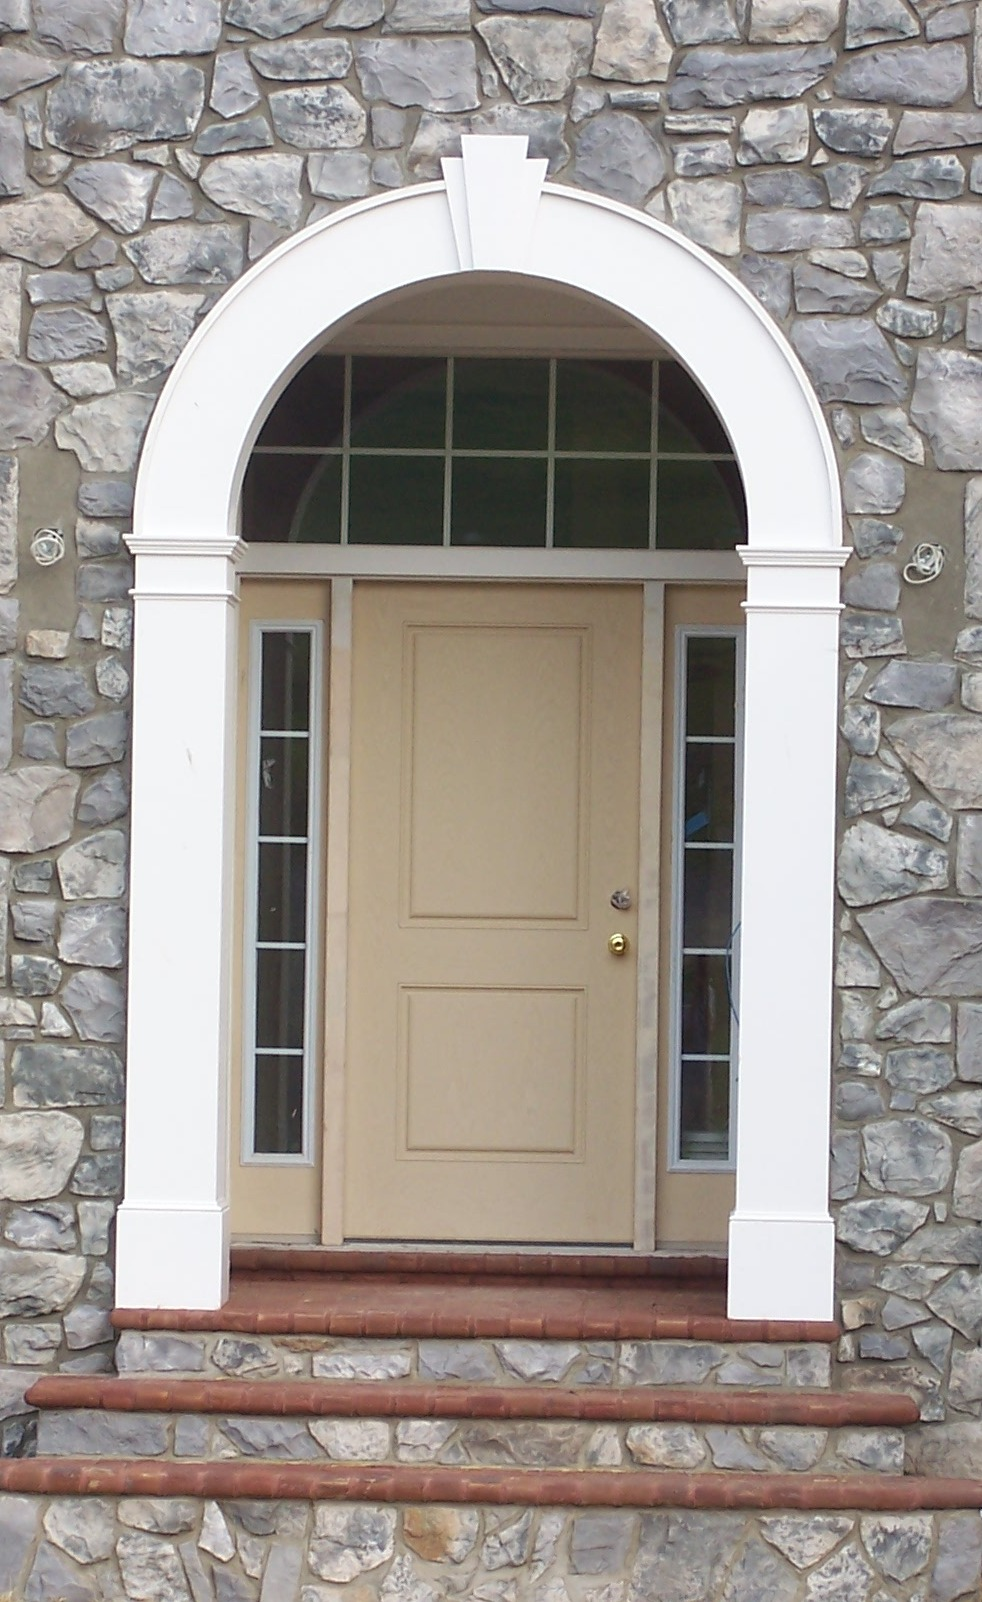 Exterior doors fiberglass vs steel heartland home - Steel vs fiberglass exterior door ...